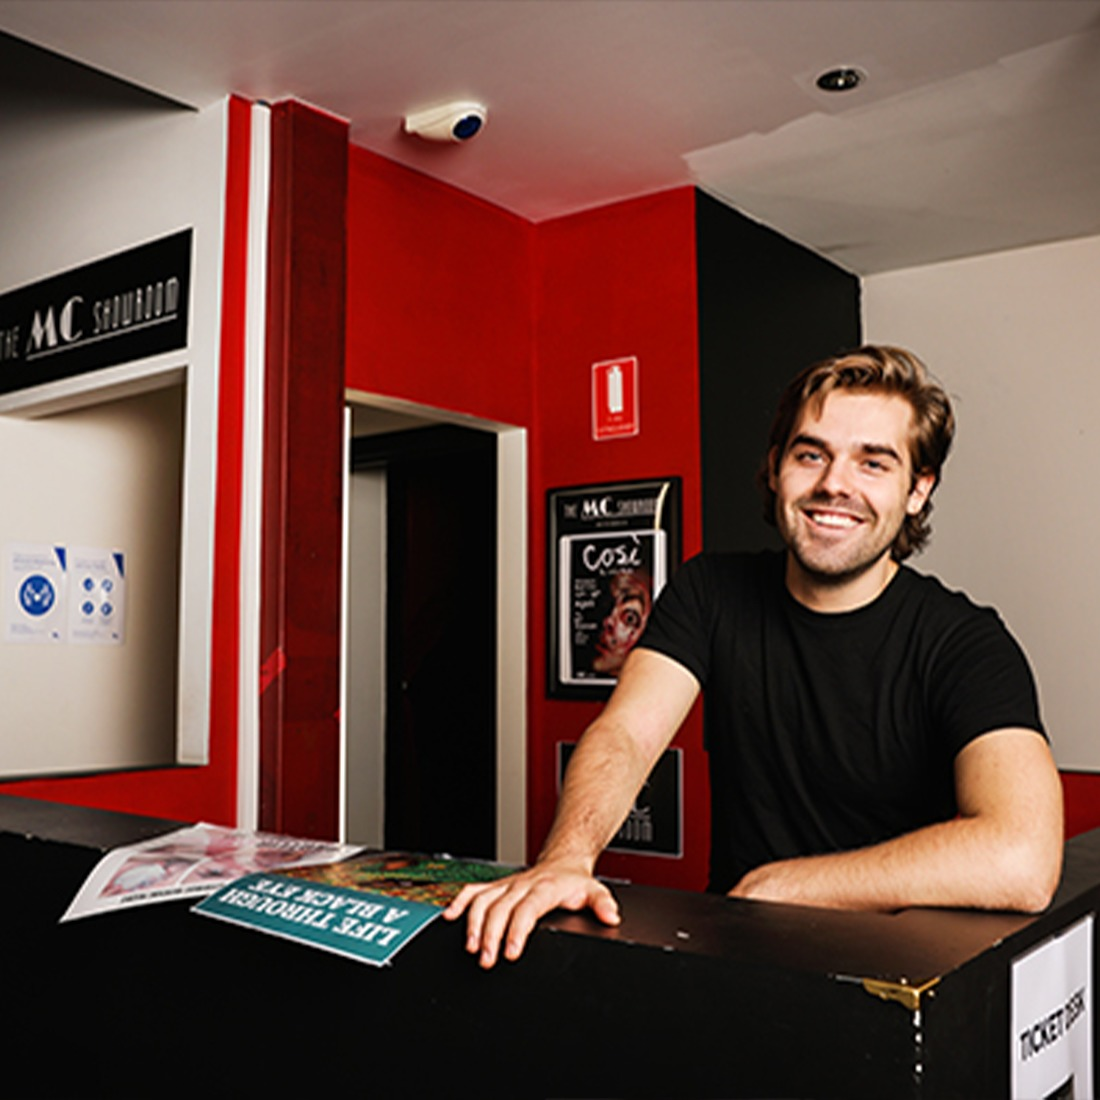 Alex Moffat and his primary role in our business is in the venue operations